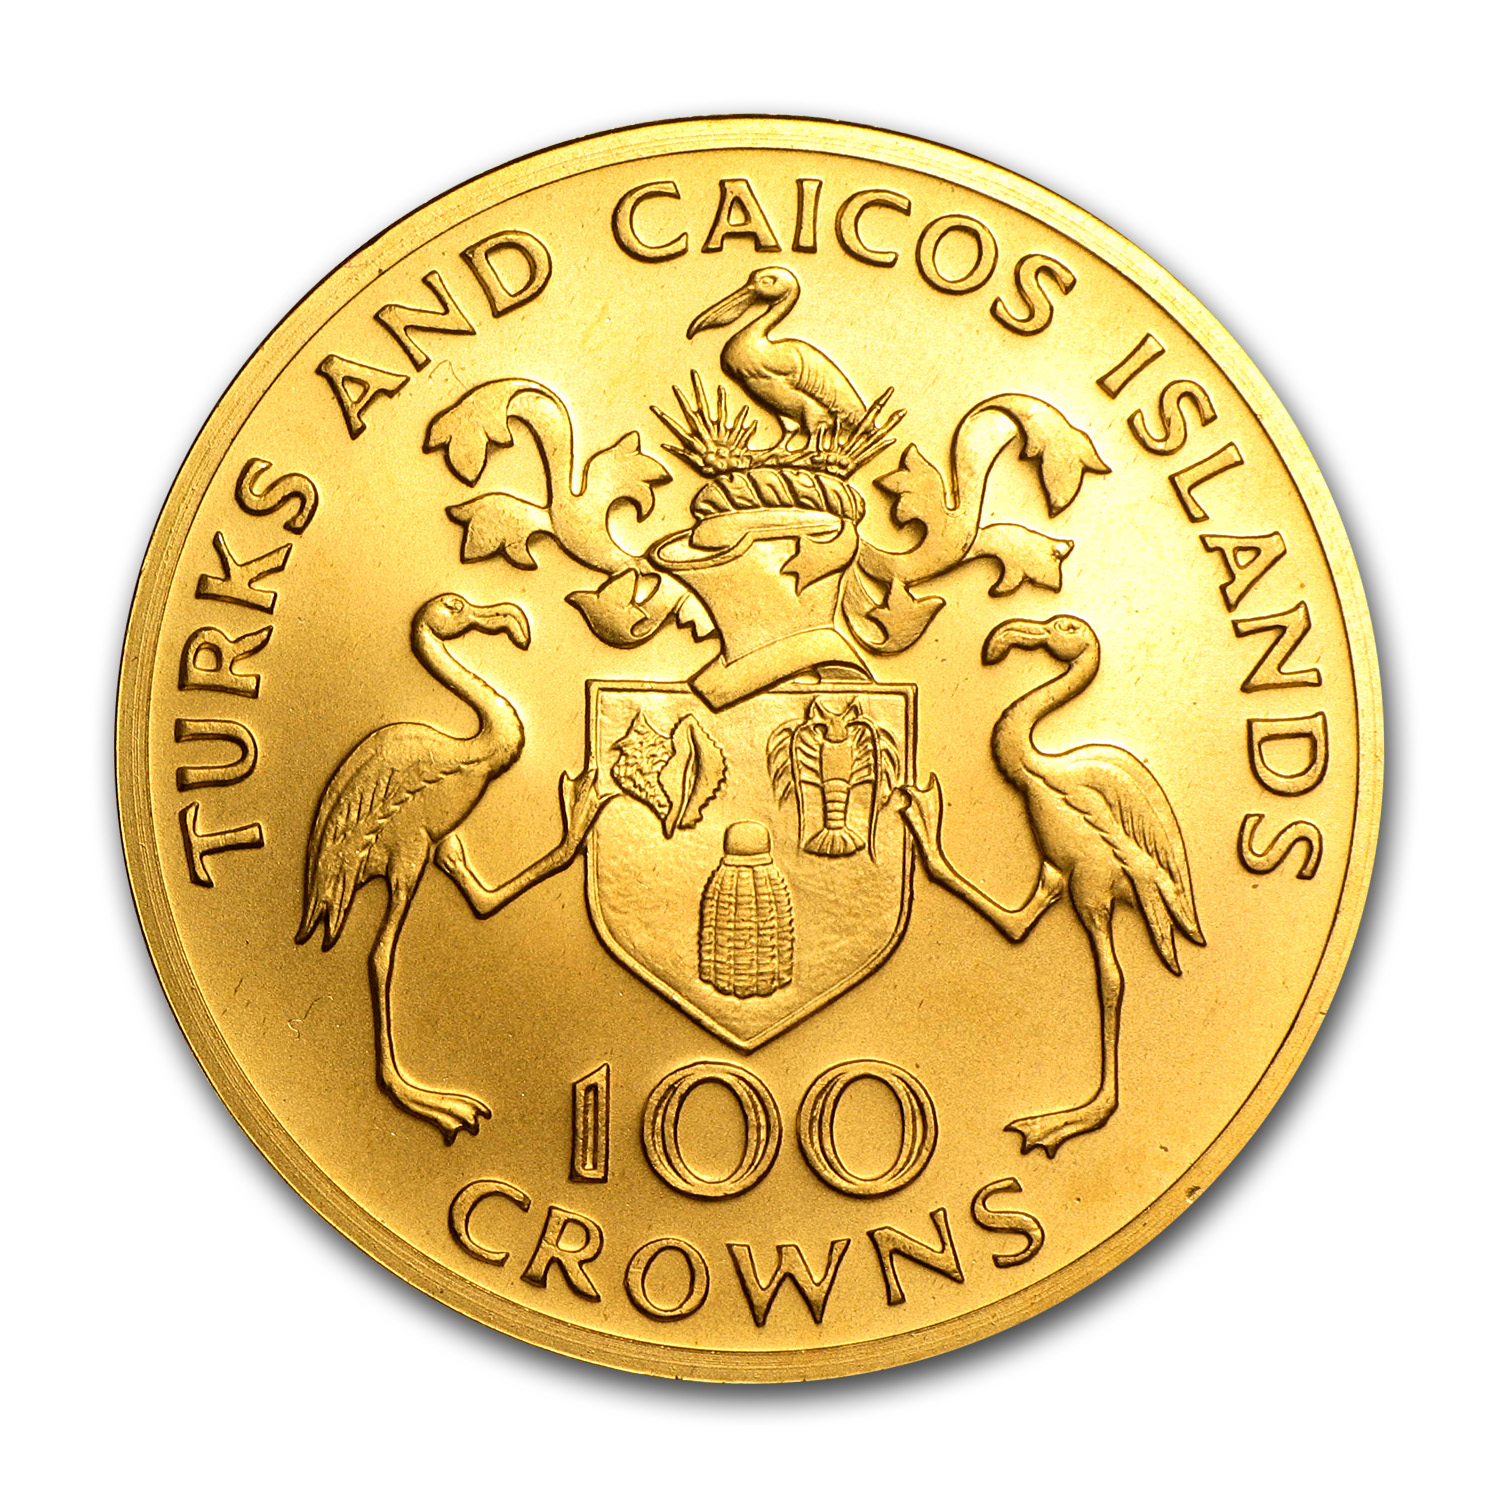 1974 Turks & Caicos Gold 100 Crowns BU/Proof